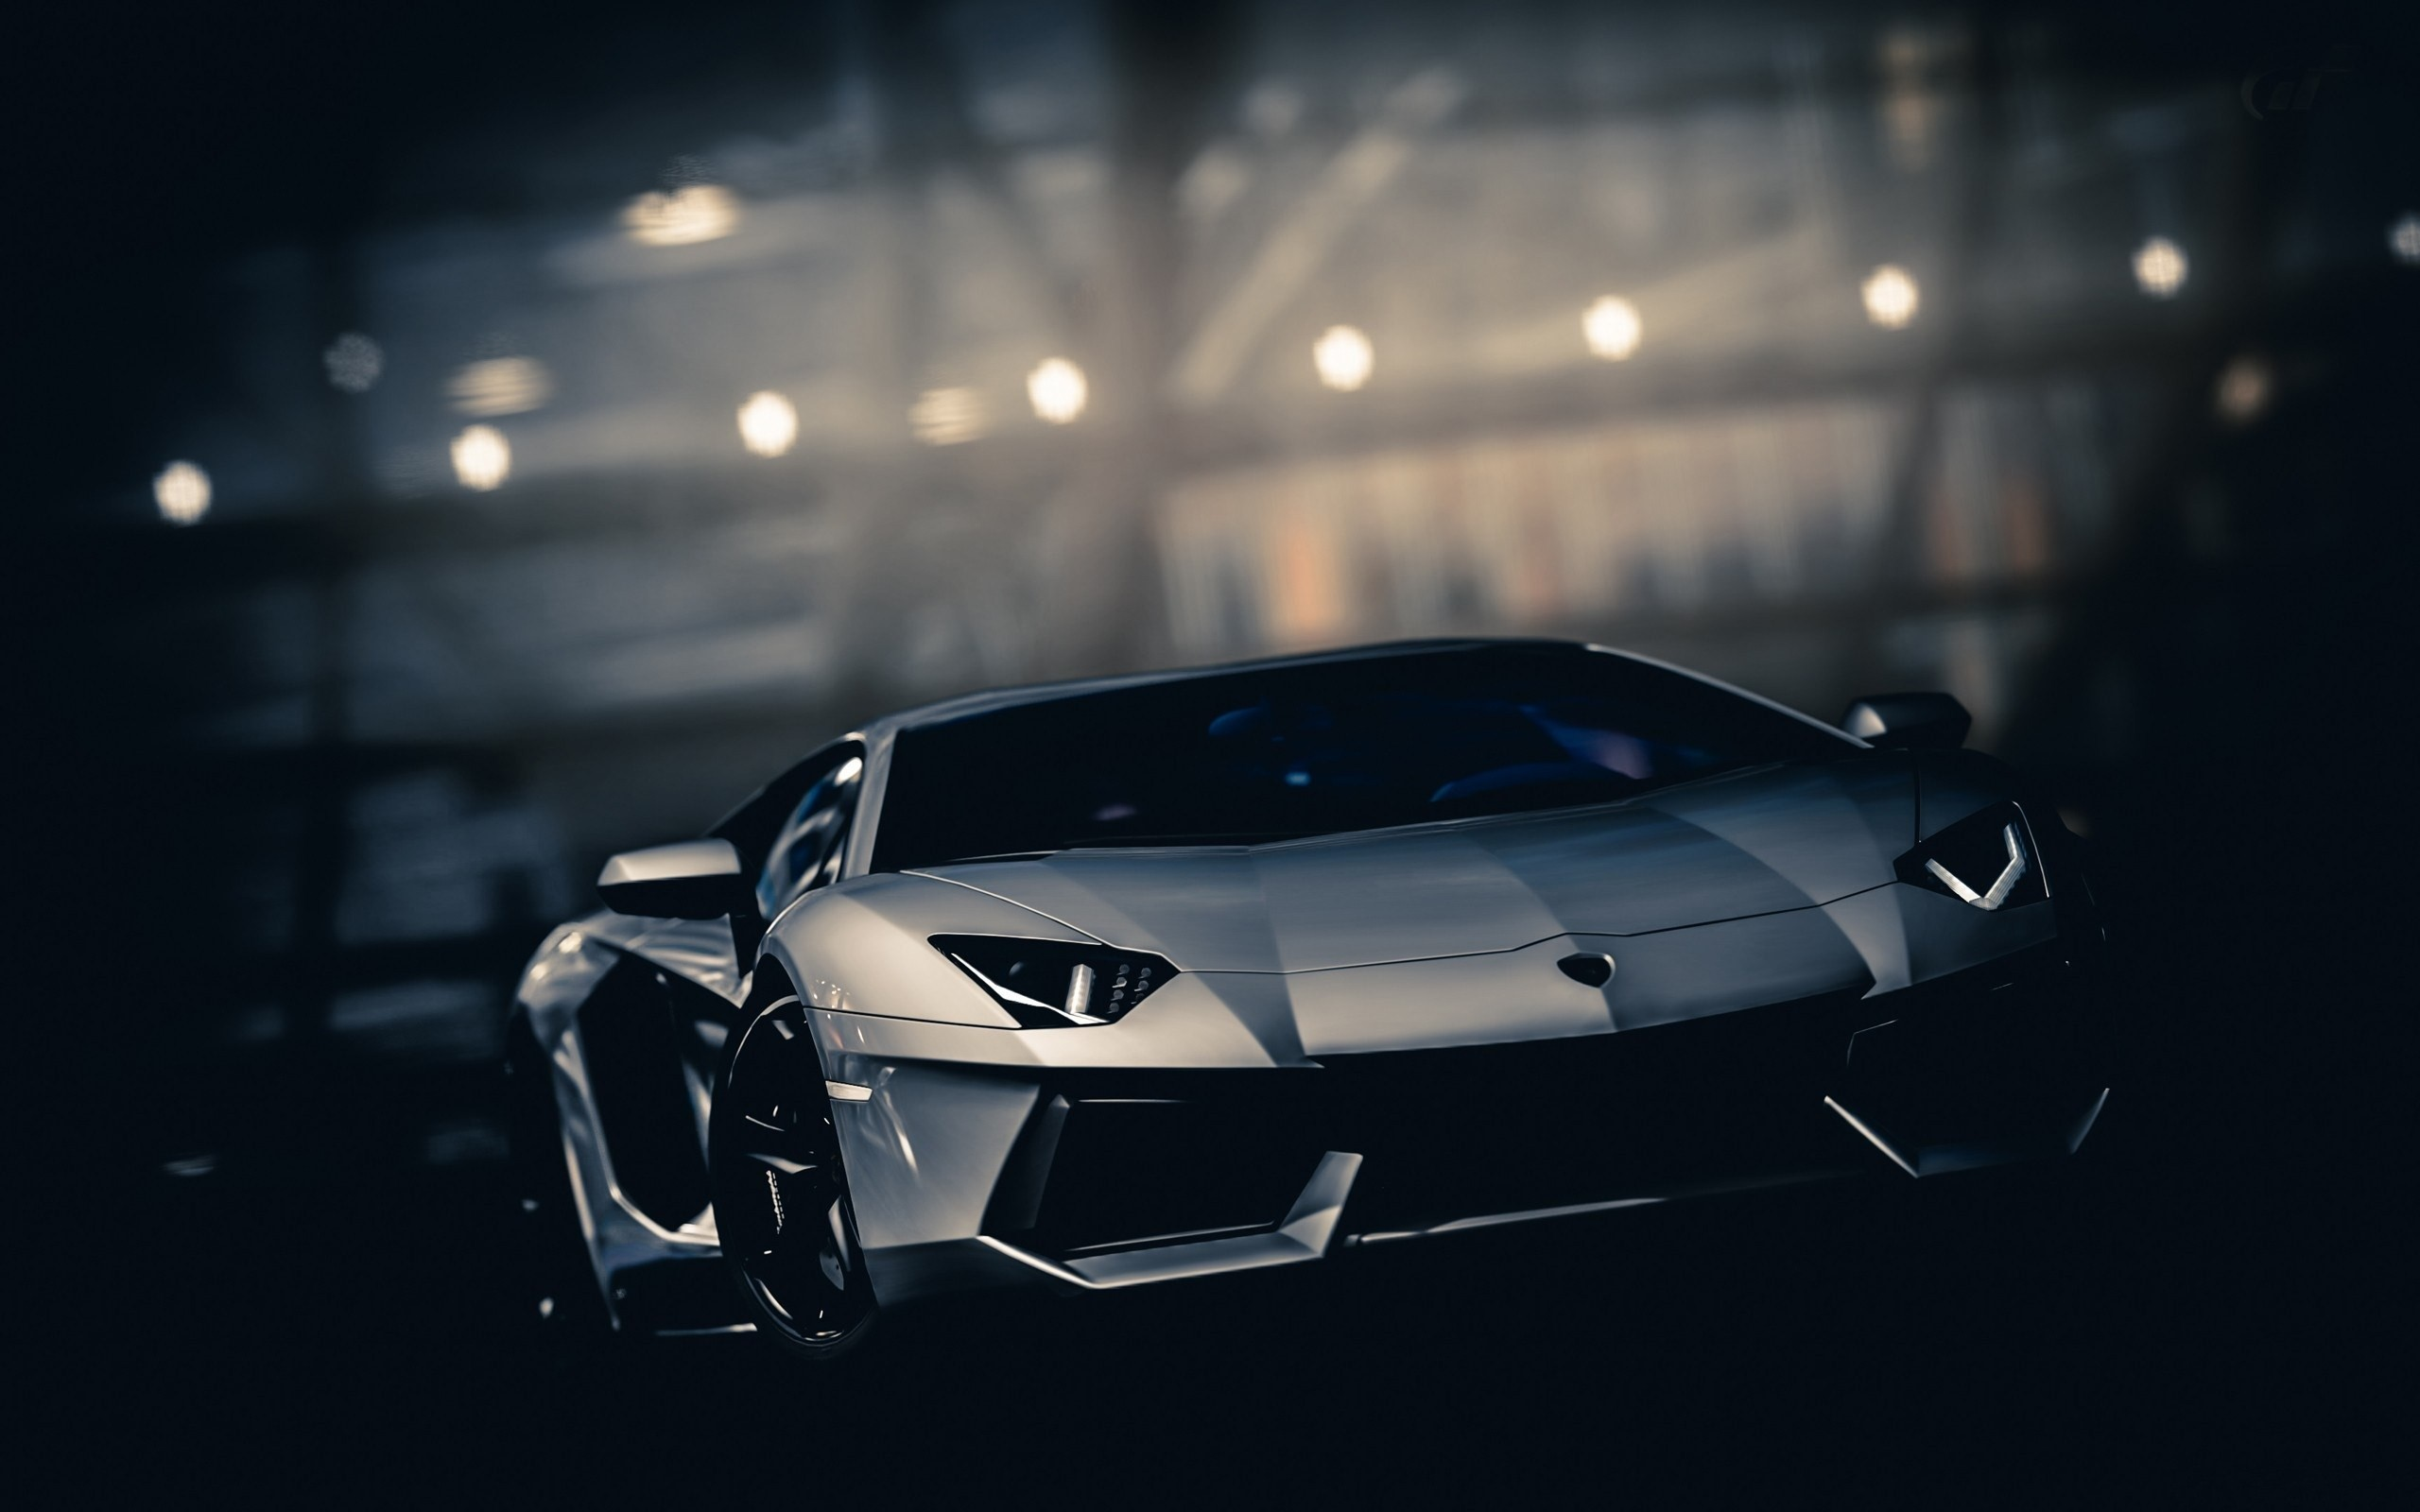 2560x1600 Looking For Lamborghini Cars Wallpapers. Stop Searching Because We Have  Collected Lamborghini Cars Wallpapers Collection For You.